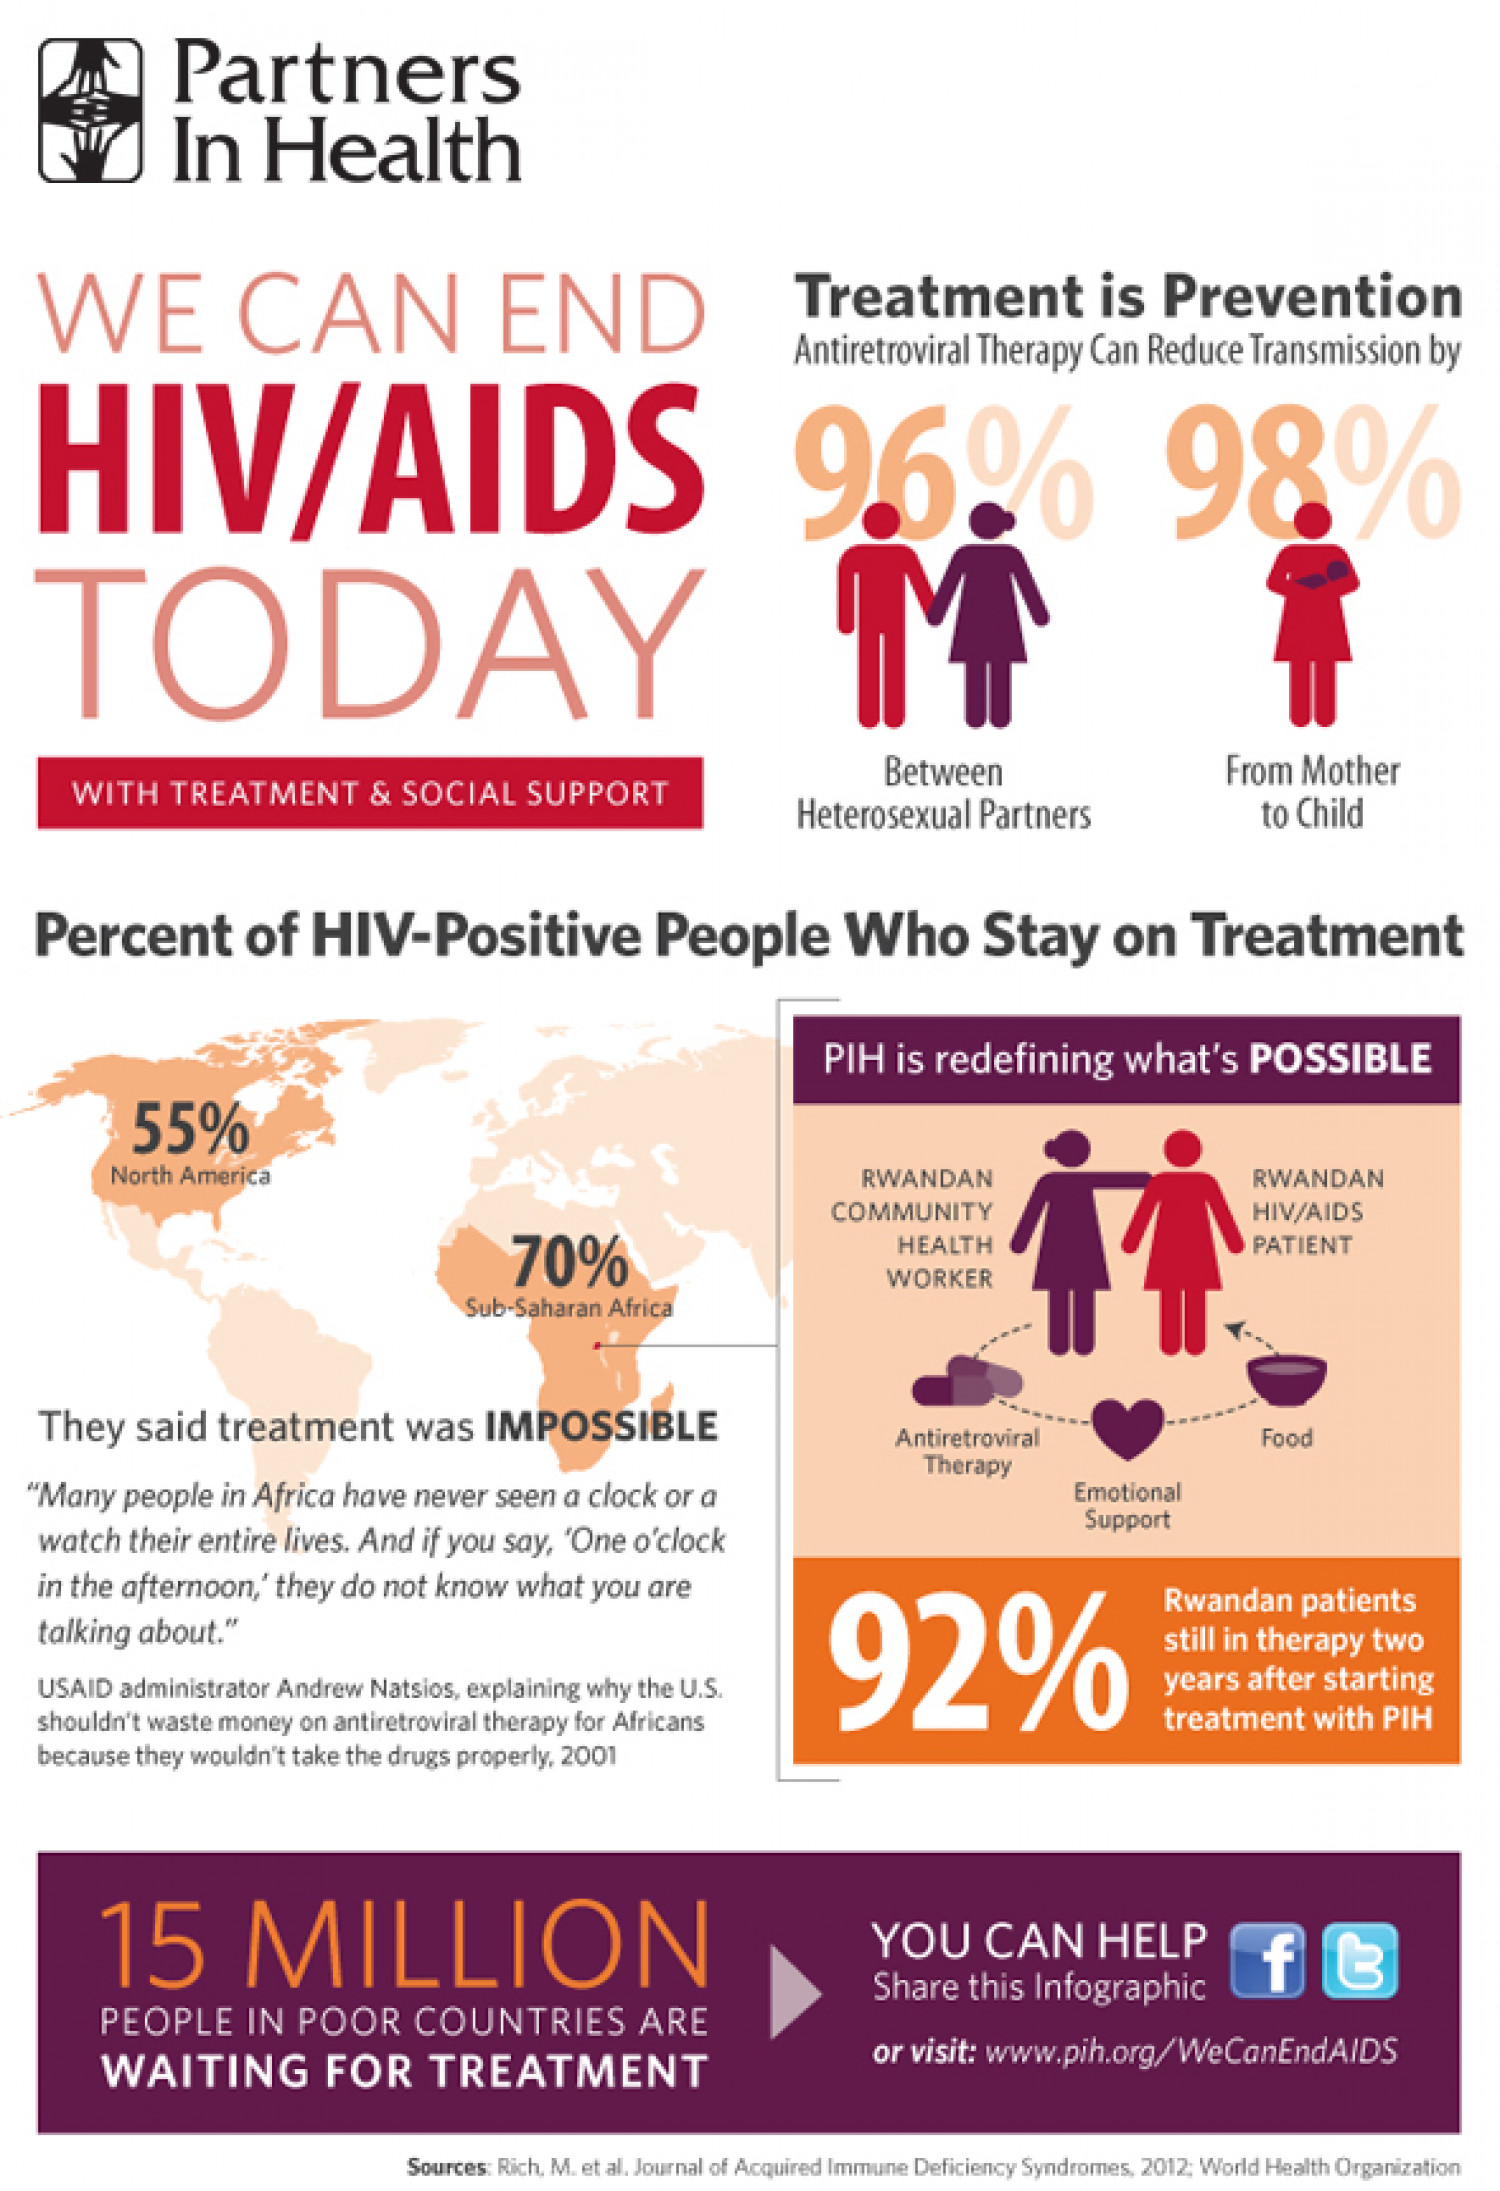 We Can End HIV/AIDS Today With Treatment  Infographic